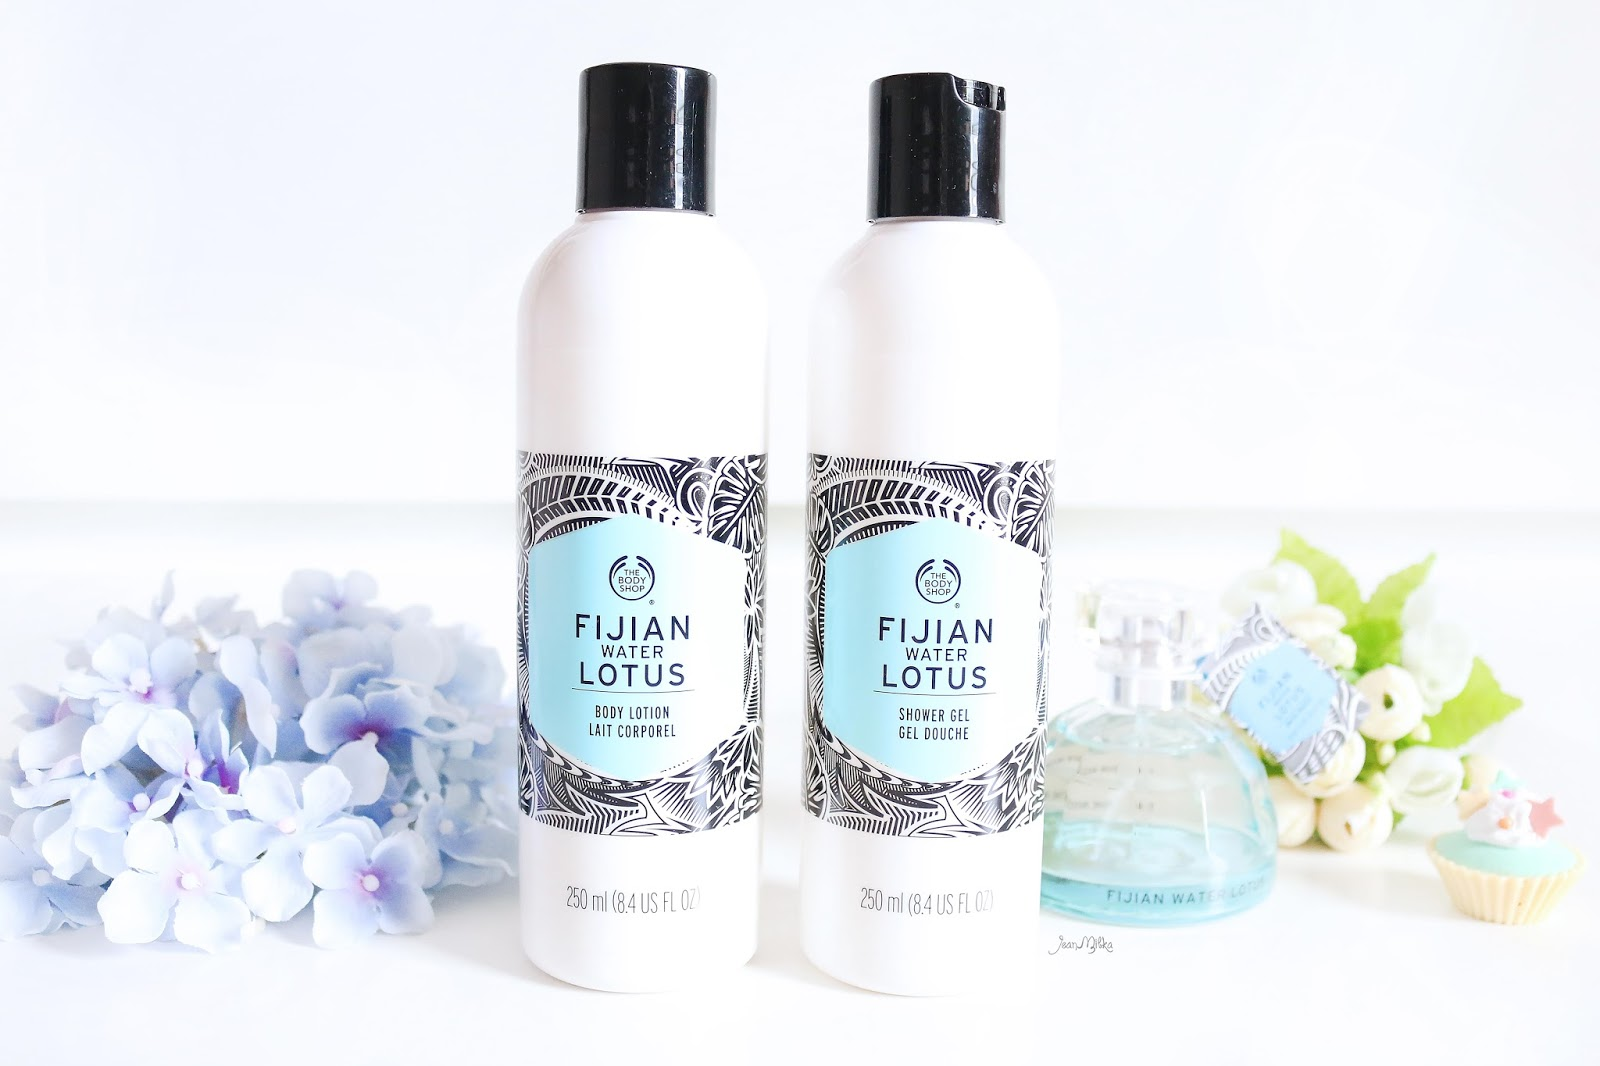 the body shop, body shop, review, beauty, skincare, fijian water lotus, the body shop voyage collection, voyage collection, body lotion, shower gel